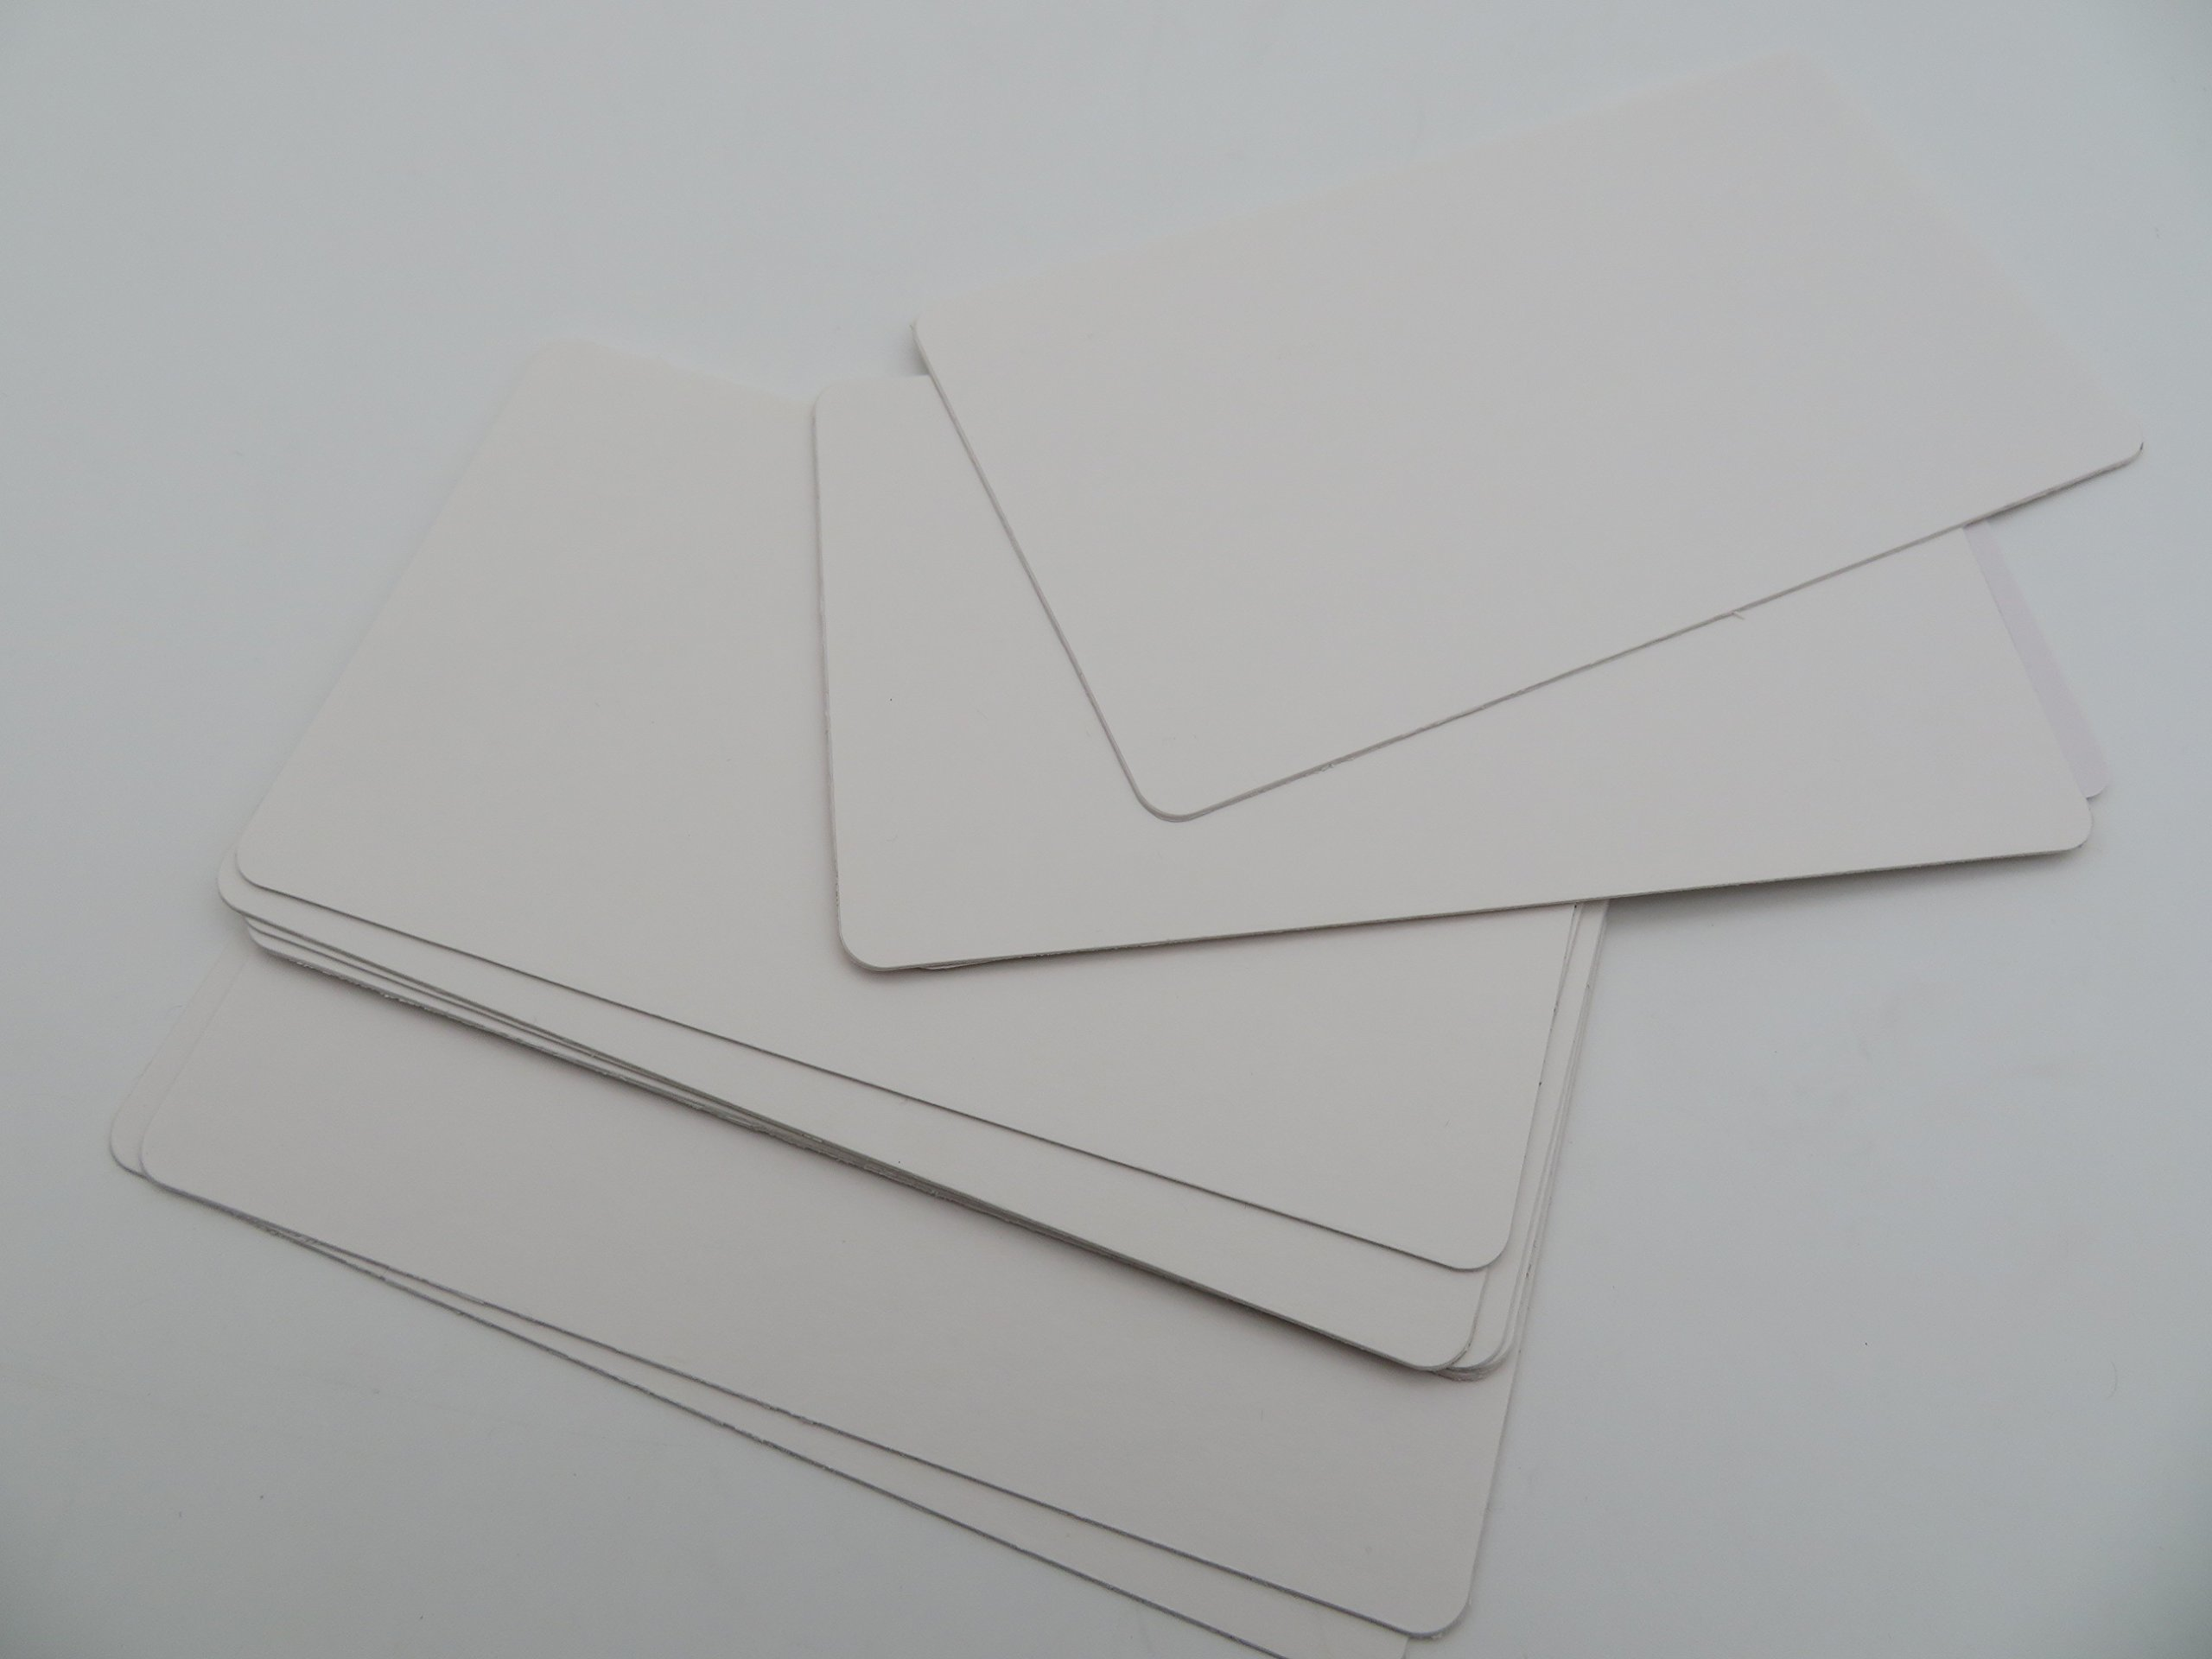 25 pcs/bag,Size:4'' X 6'' X 0.012'', used for Thermal Check scanner cleaning card